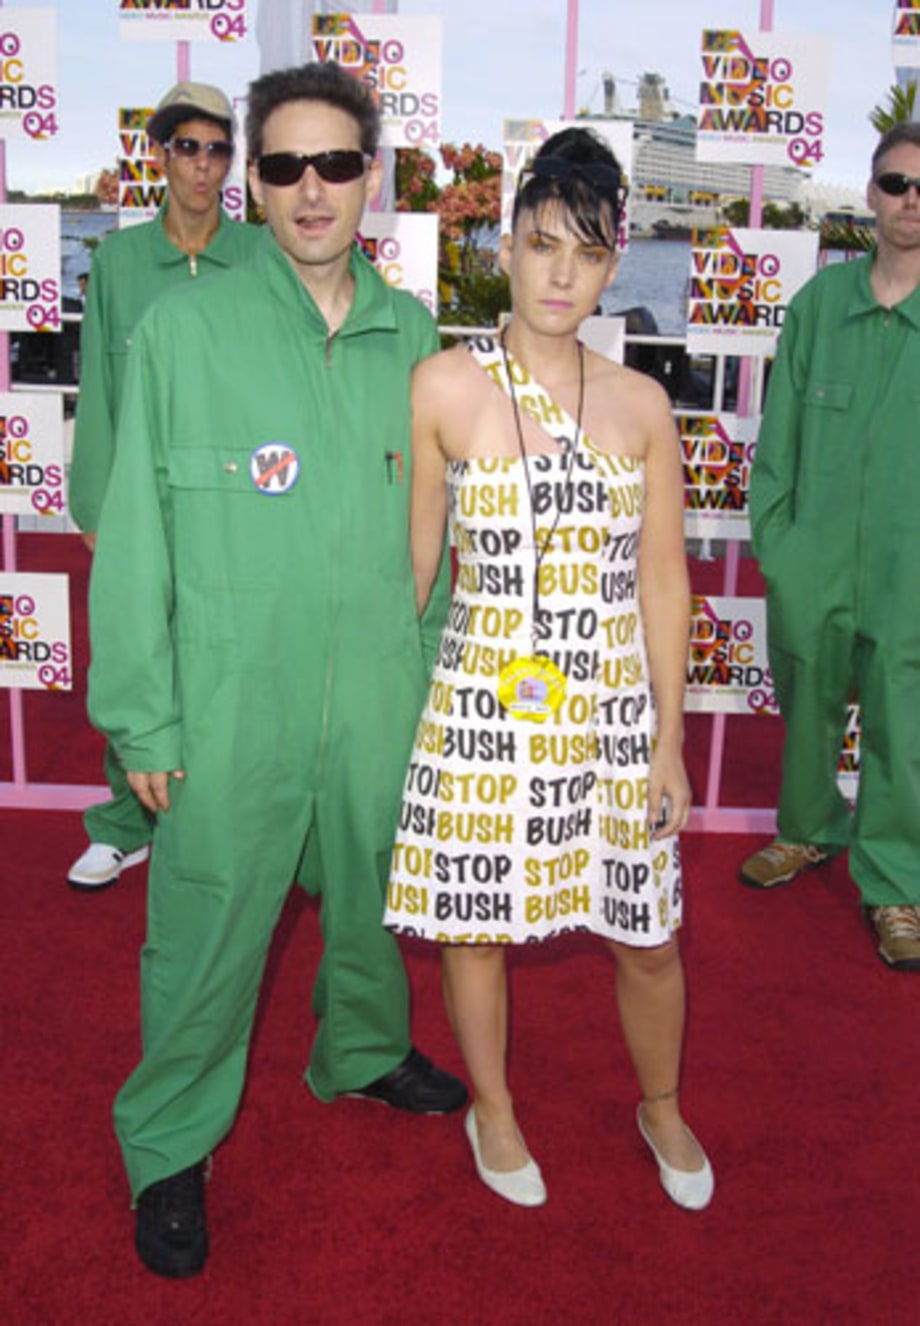 Adam Horovitz and Kathleen Hanna